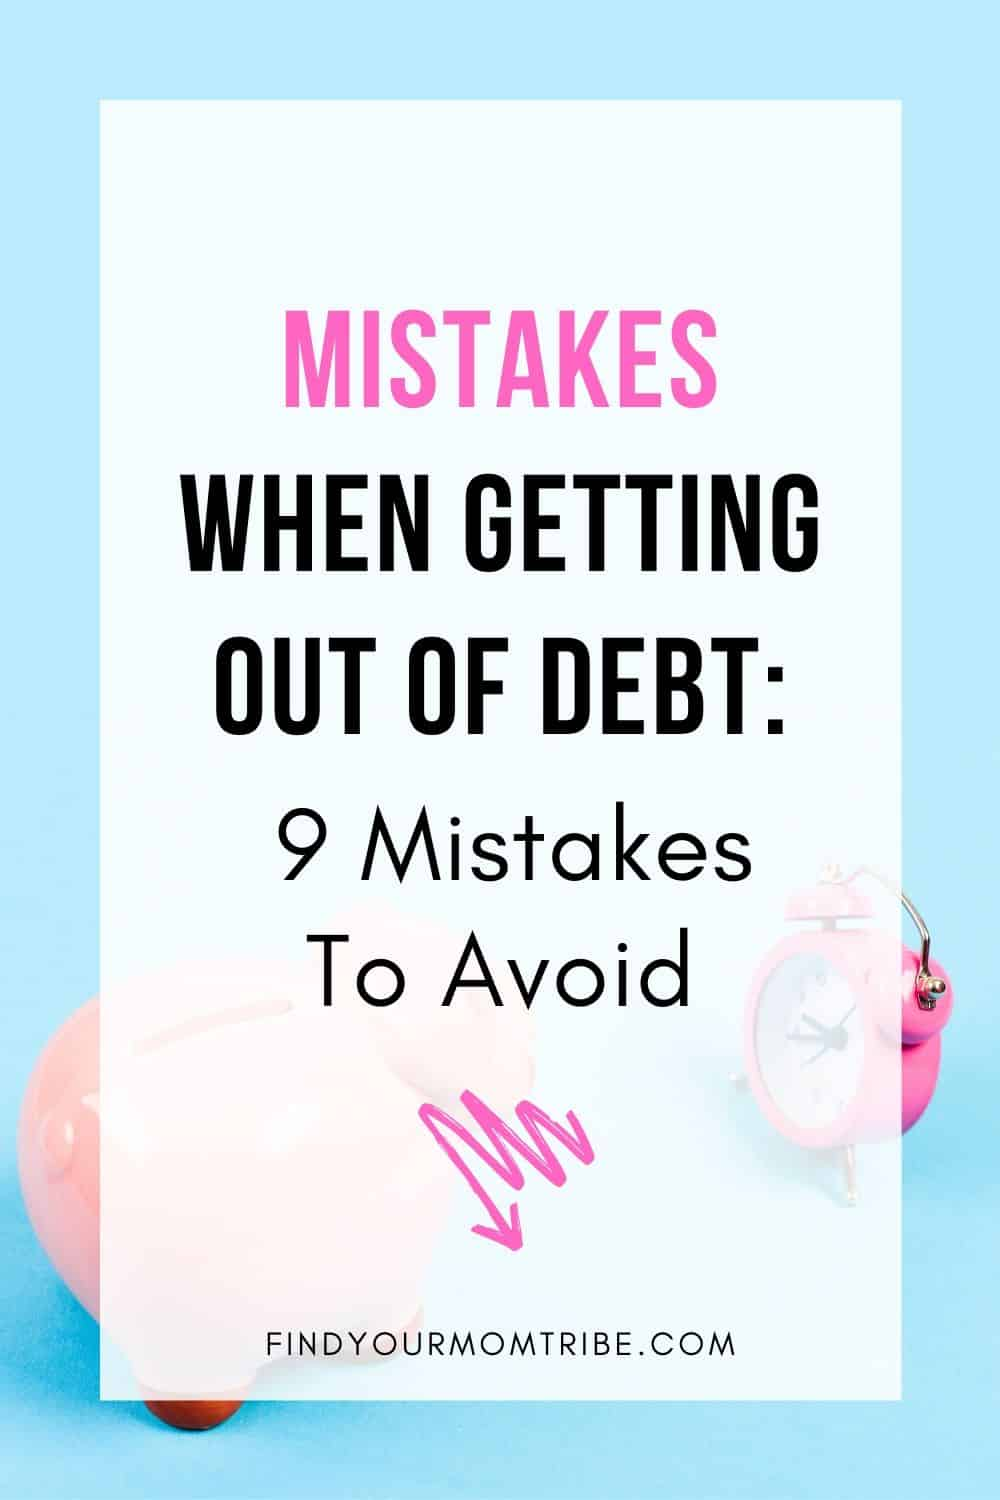 Pinterest Mistakes When Getting Out of Debt